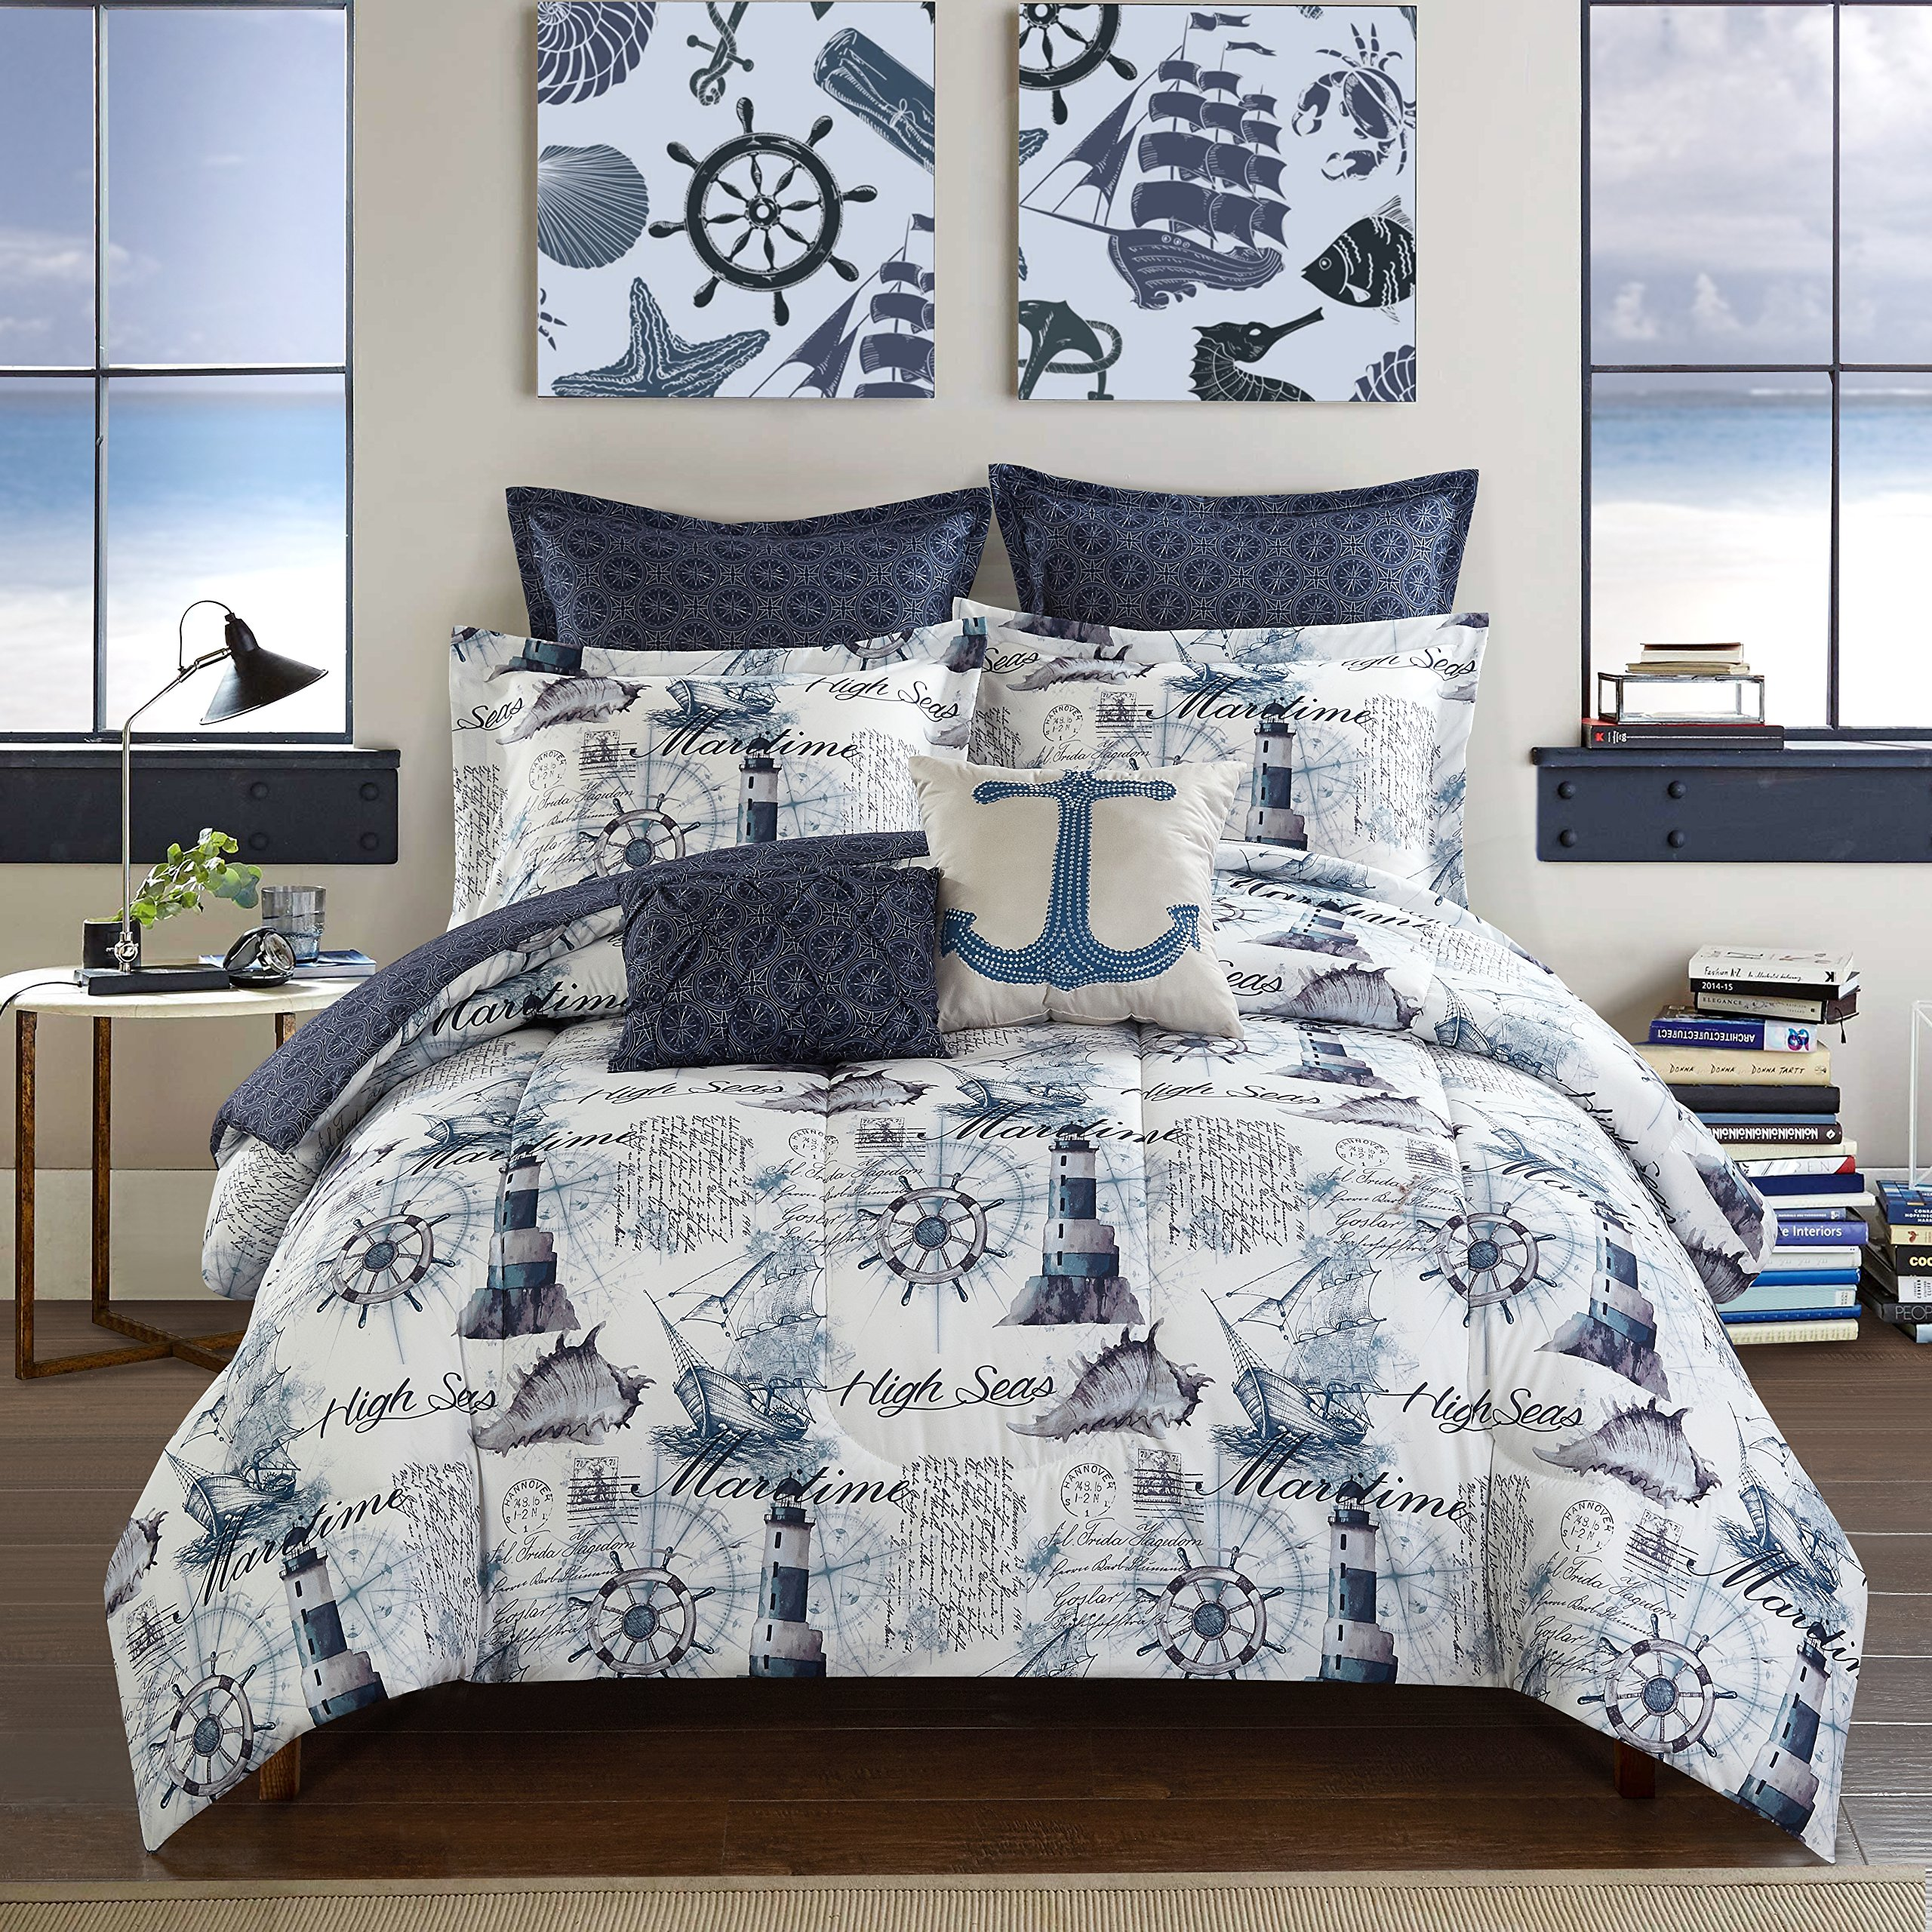 uk babies together ocean seashell attractive king house beach class touch girls comforter full coastal med mind themed bedding bedspreads bksxzq adults baby bed teens quilts designer kids ga sets nursery in with comforters twin cushty decor